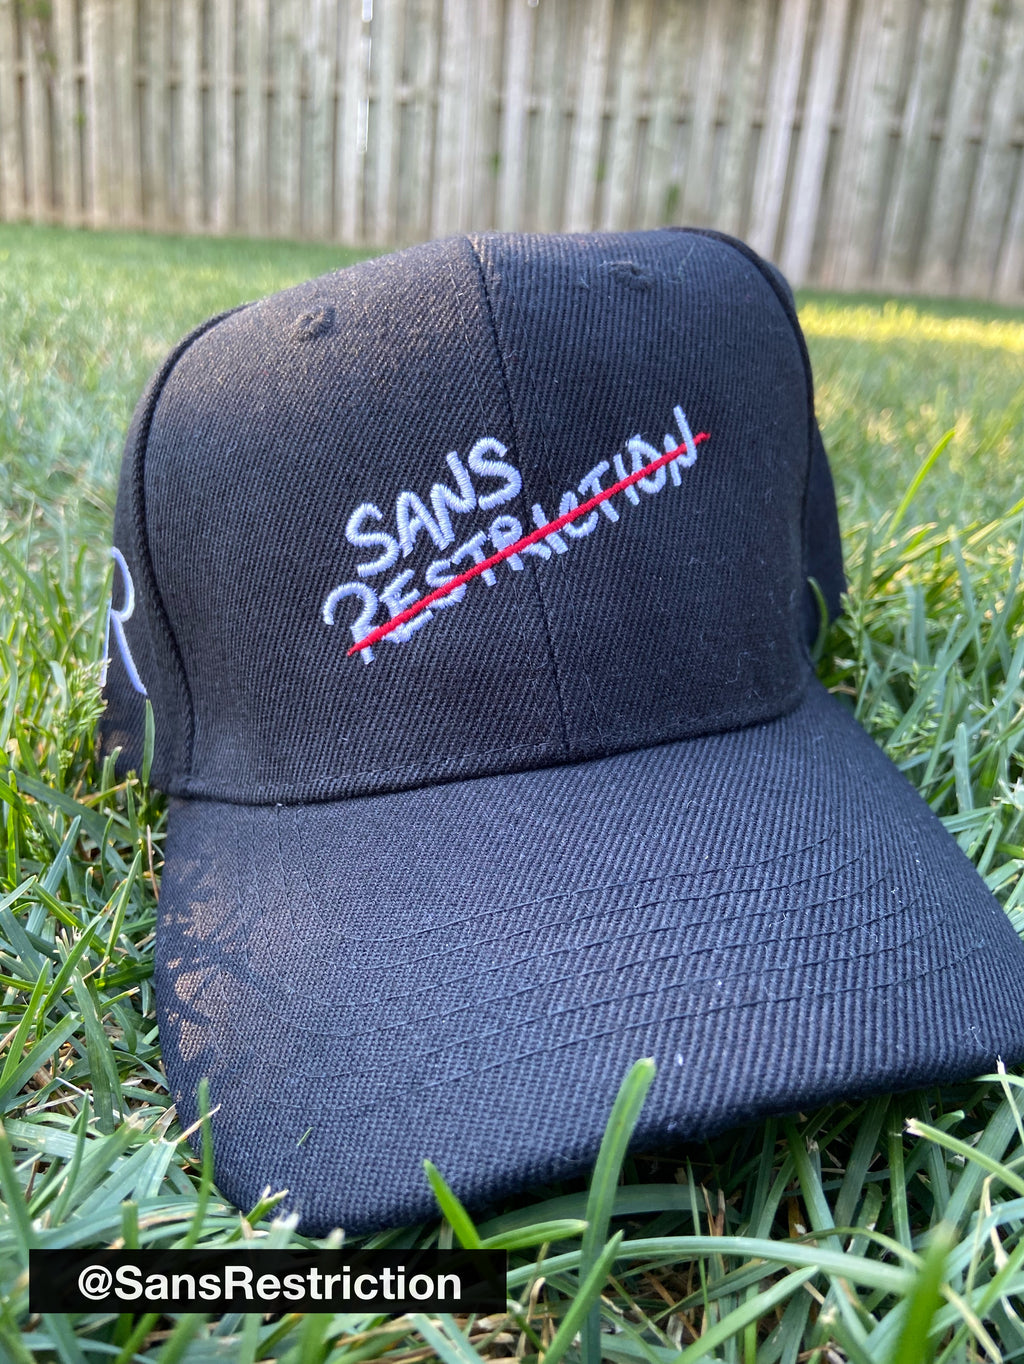 Sans Restriction - Casquette courbe ajustable